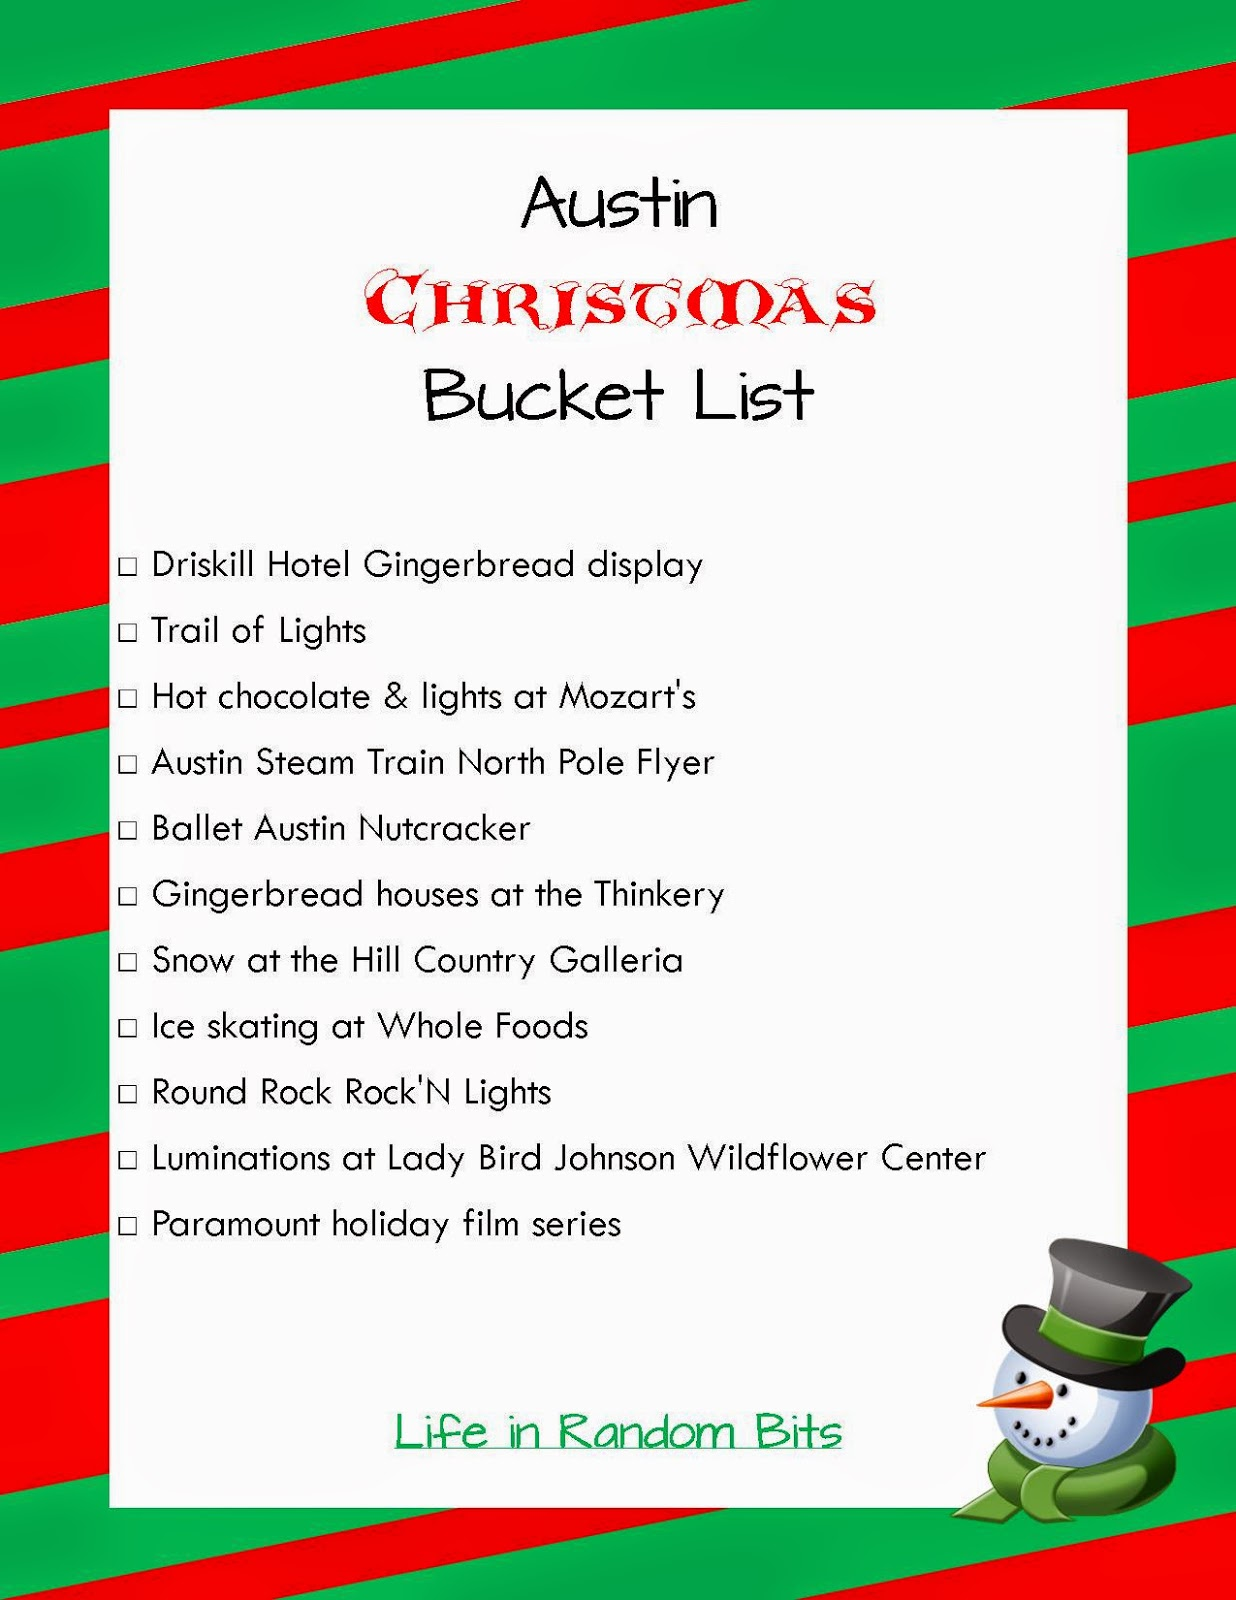 Austin Christmas event bucket list ~ Life in Random Bits #austin #christmas